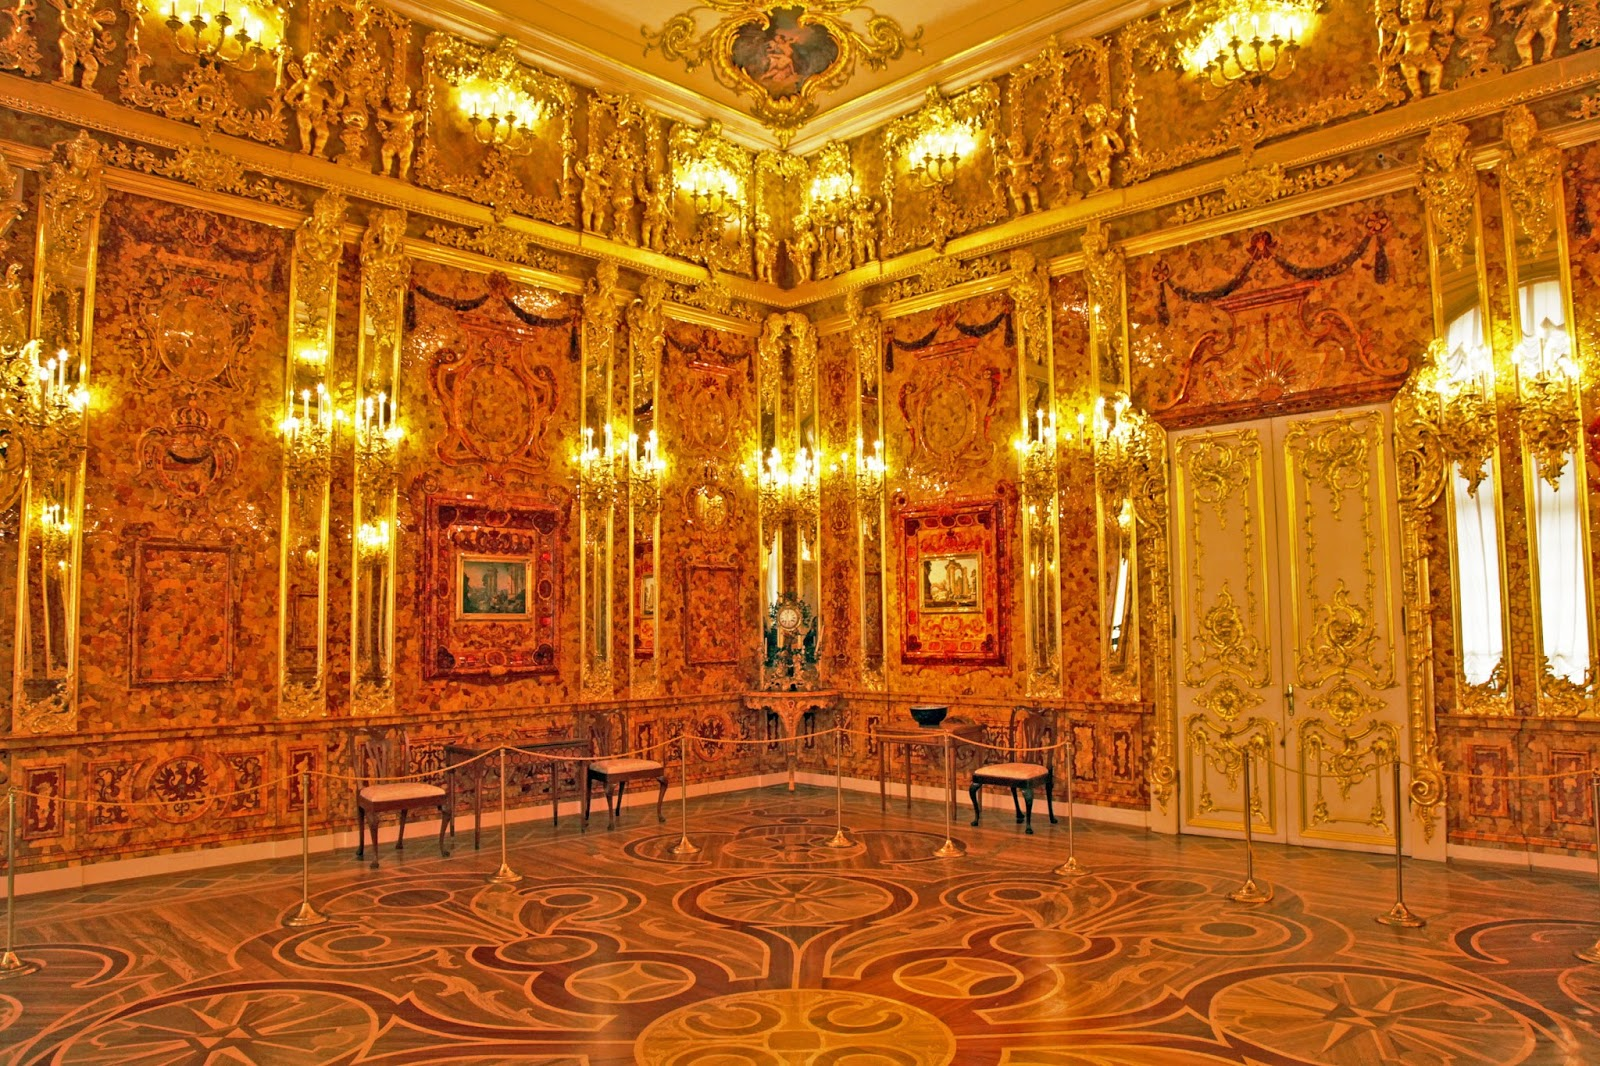 Amazing Iu0027ve Written Extensively About Three Of Them In My Books. Do You Know Which  Three? The Answer Is At The End Of My Blog. Happy Hunting! The Amber Room